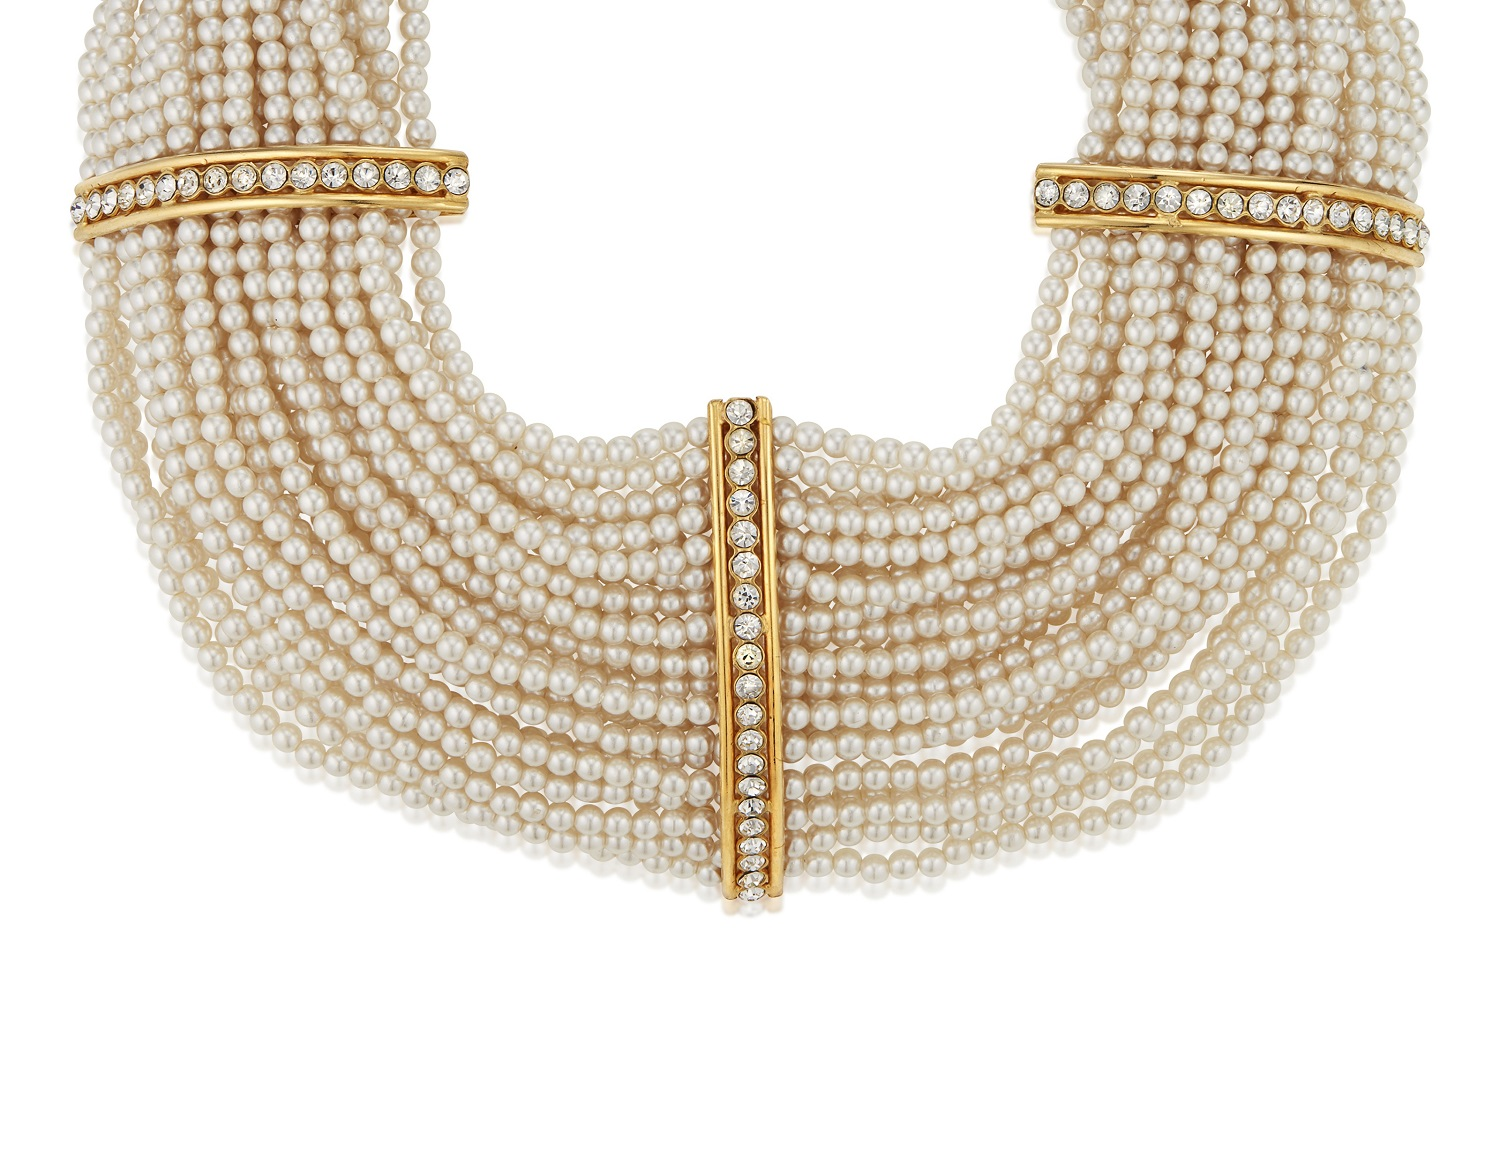 Christie's Announces Karl Lagerfeld Chanel Jewels Sale